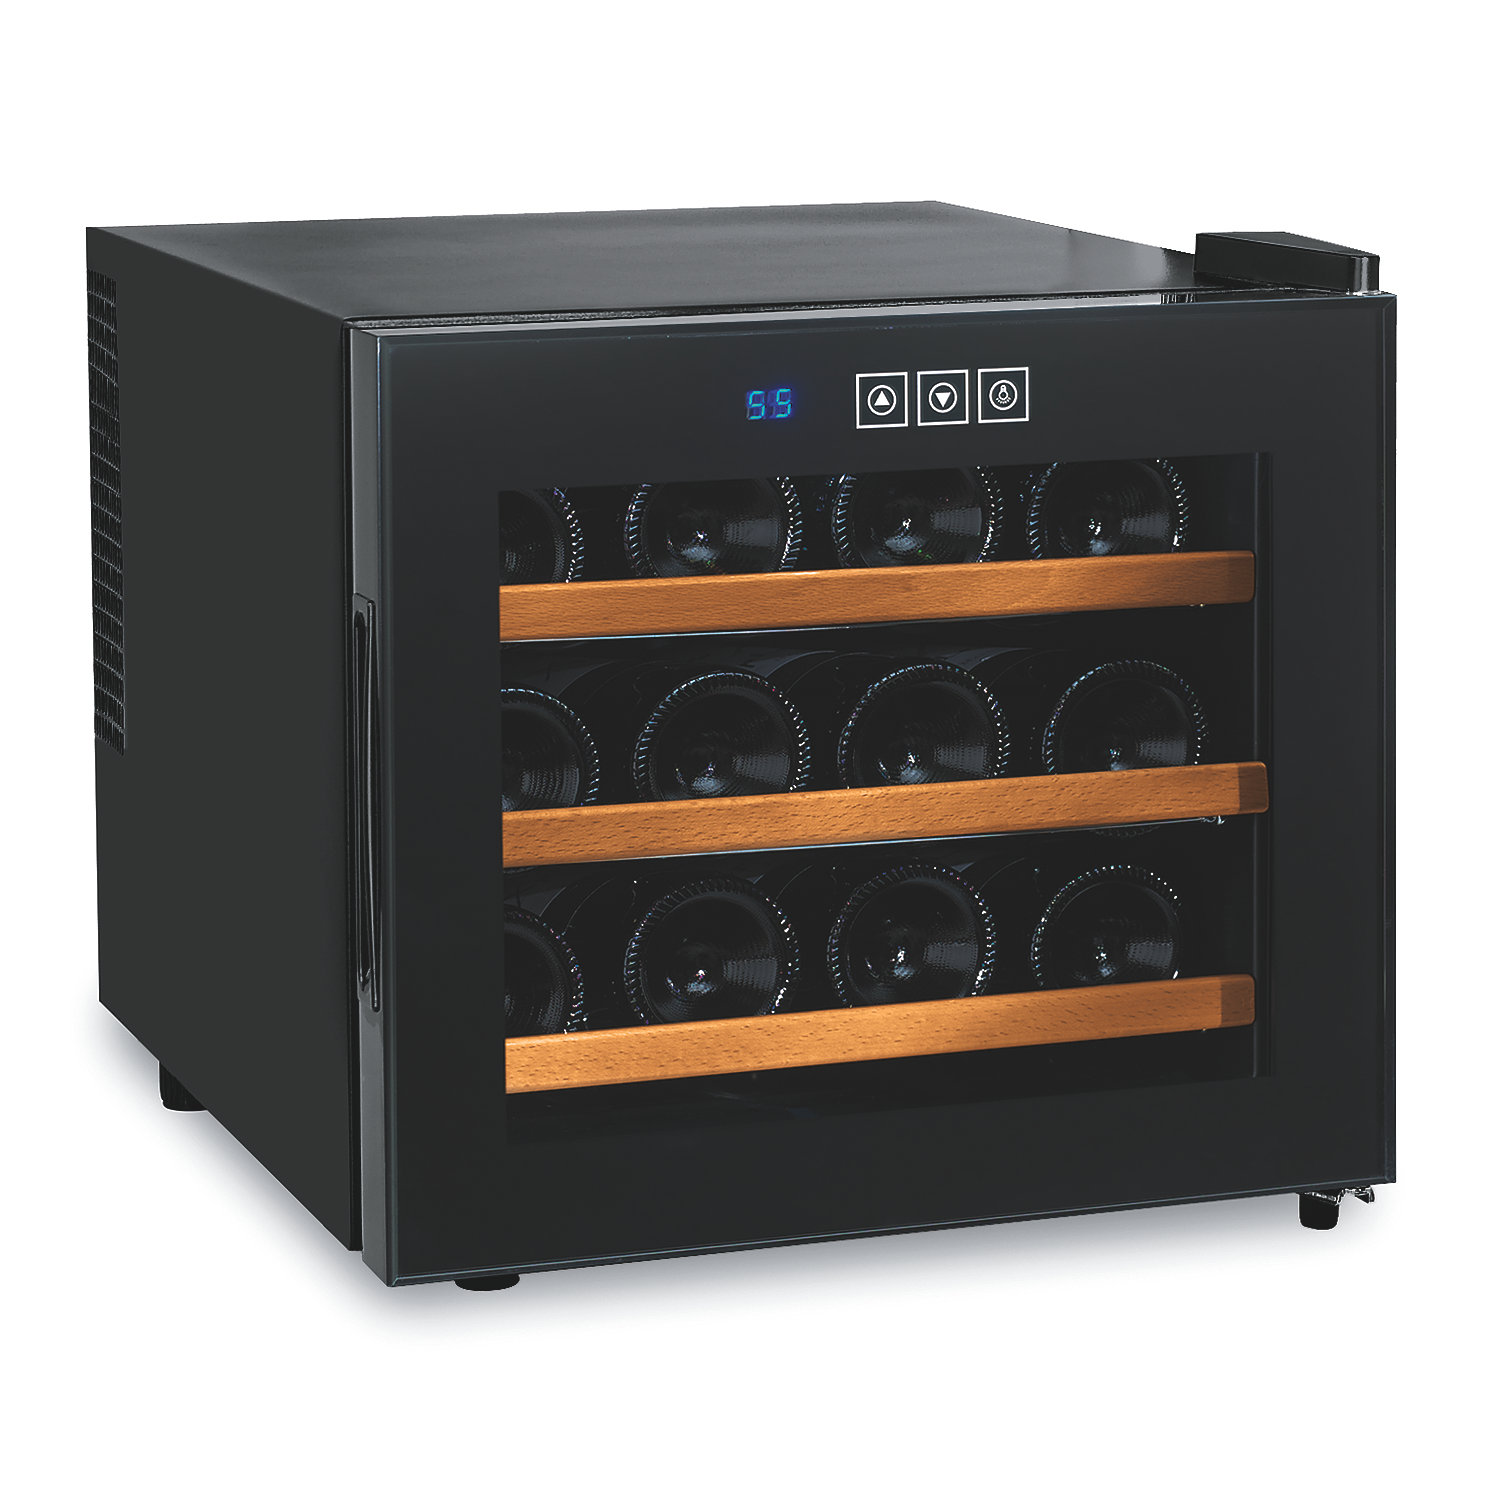 12 Bottle Wine Fridge Part - 21: ... 12 Bottle Touchscreen Wine Refrigerator (Wood Front Shelves). Preparing  Zoom